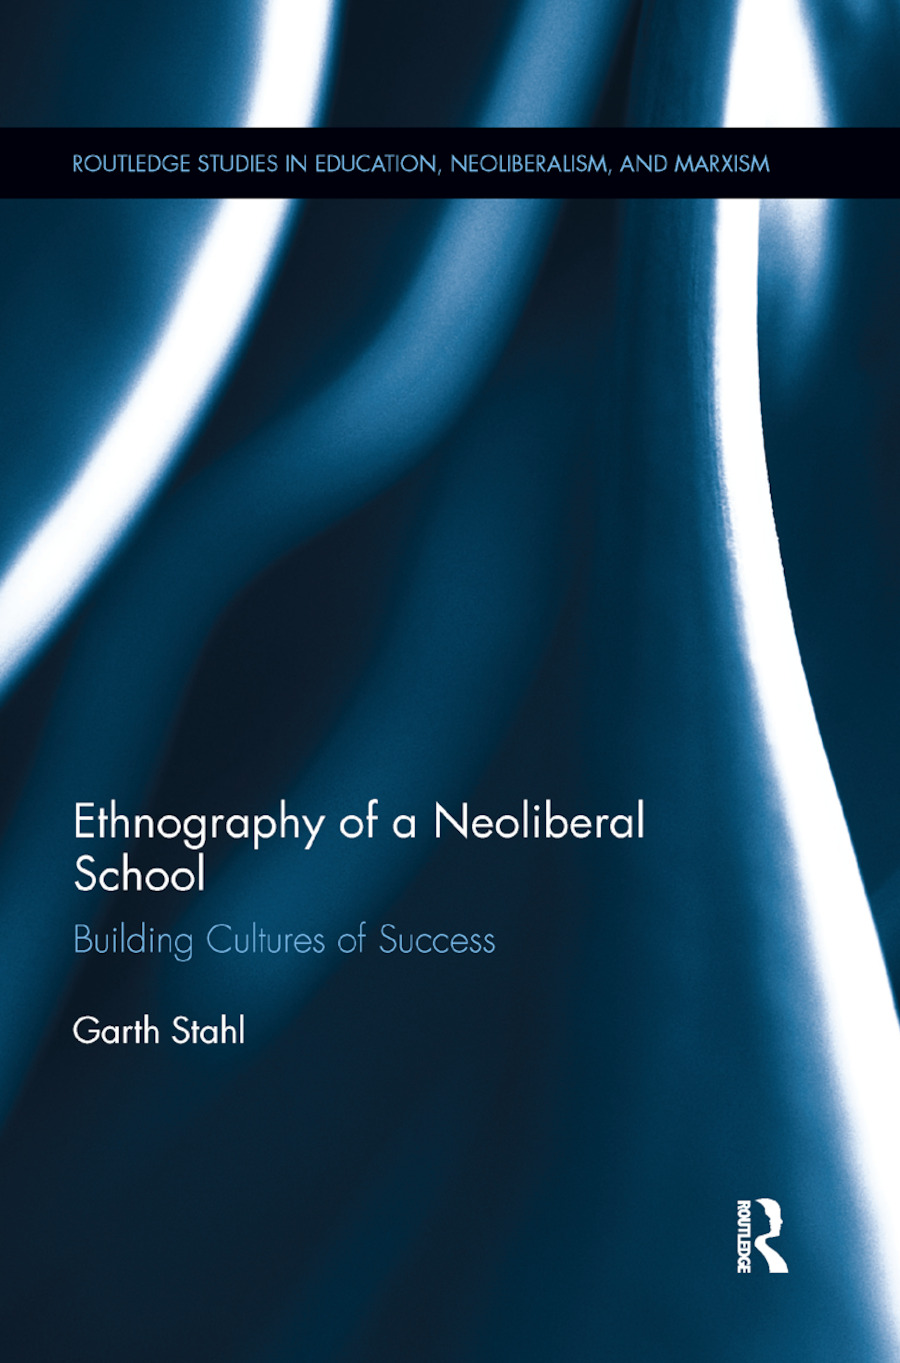 Ethnography of a Neoliberal School